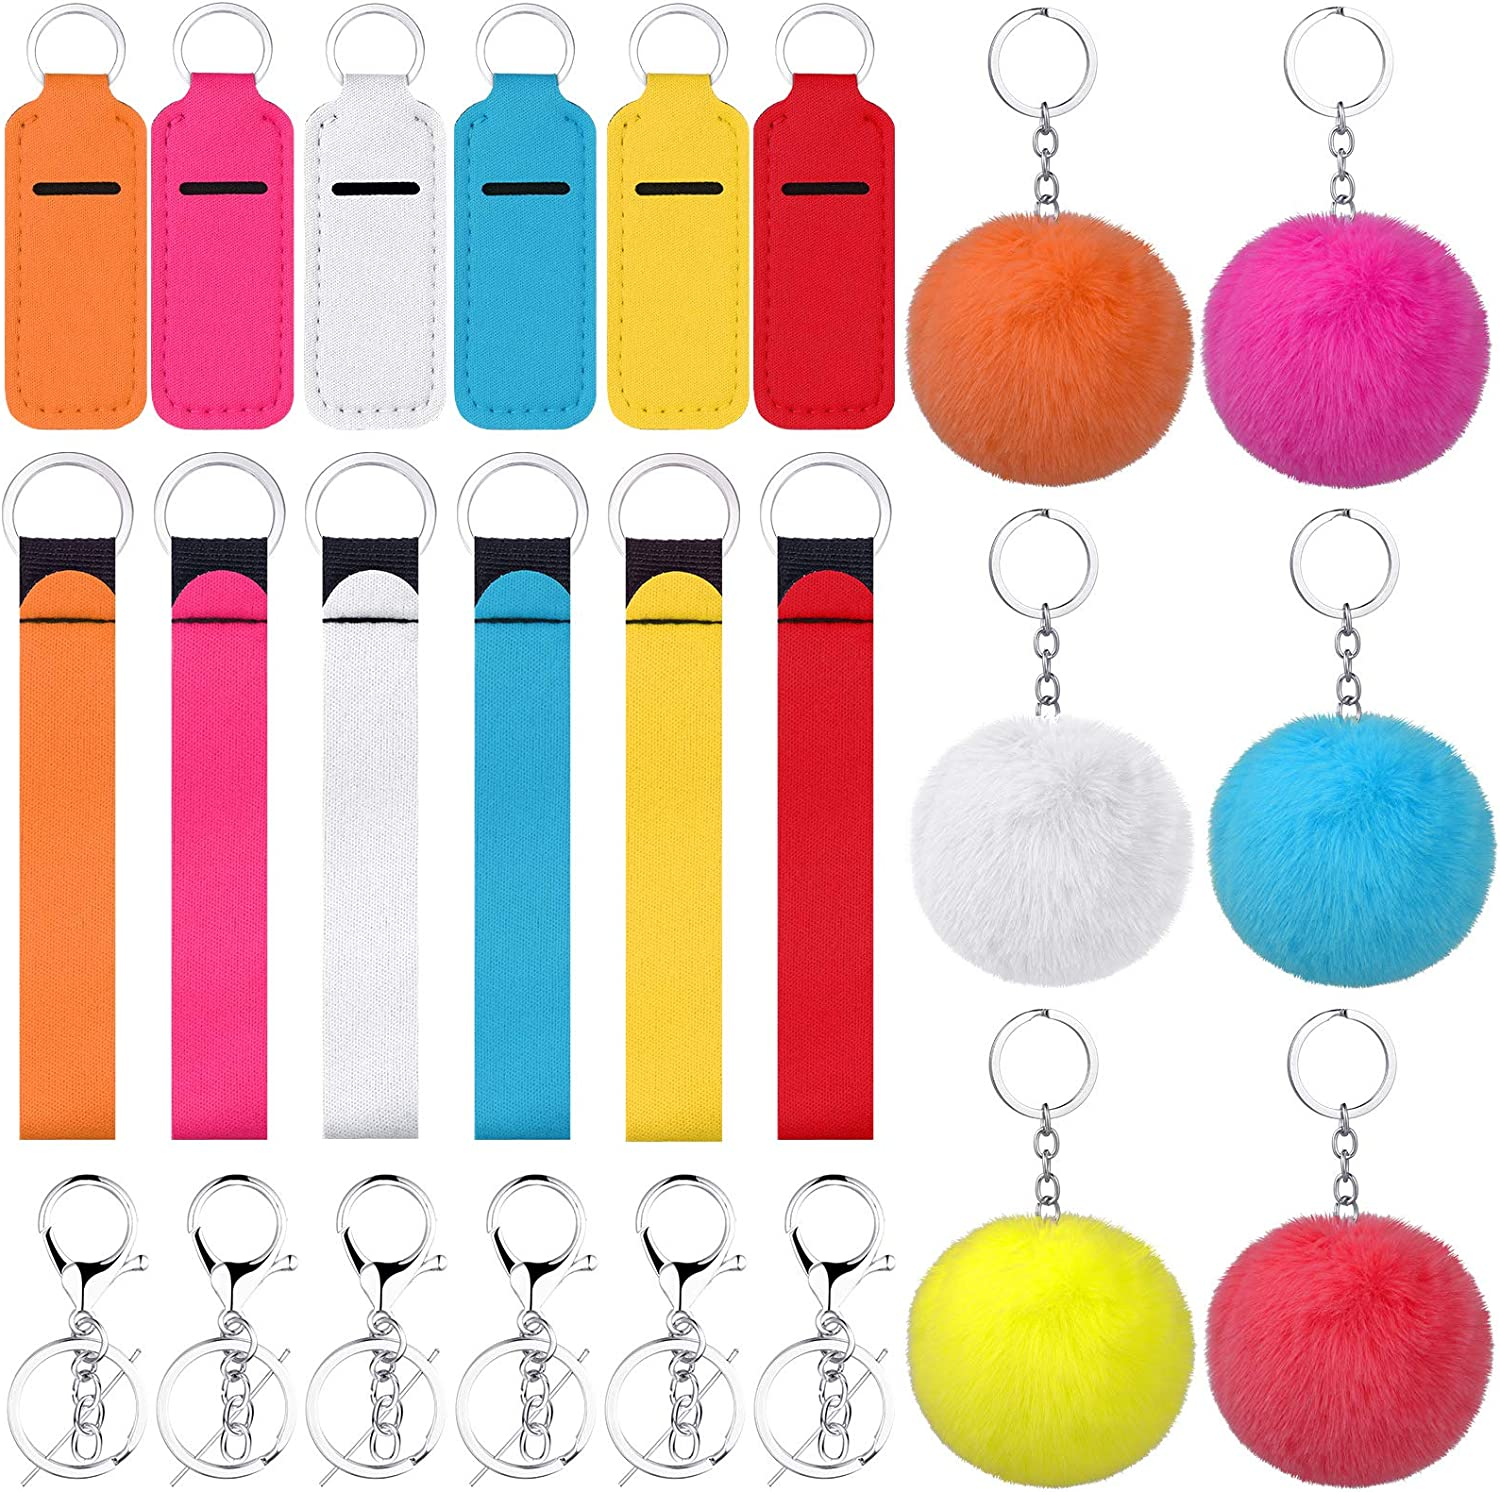 24 Pieces Chapstick Holder Keychains Sale item Keychain Max 89% OFF Lanya and Wristlet